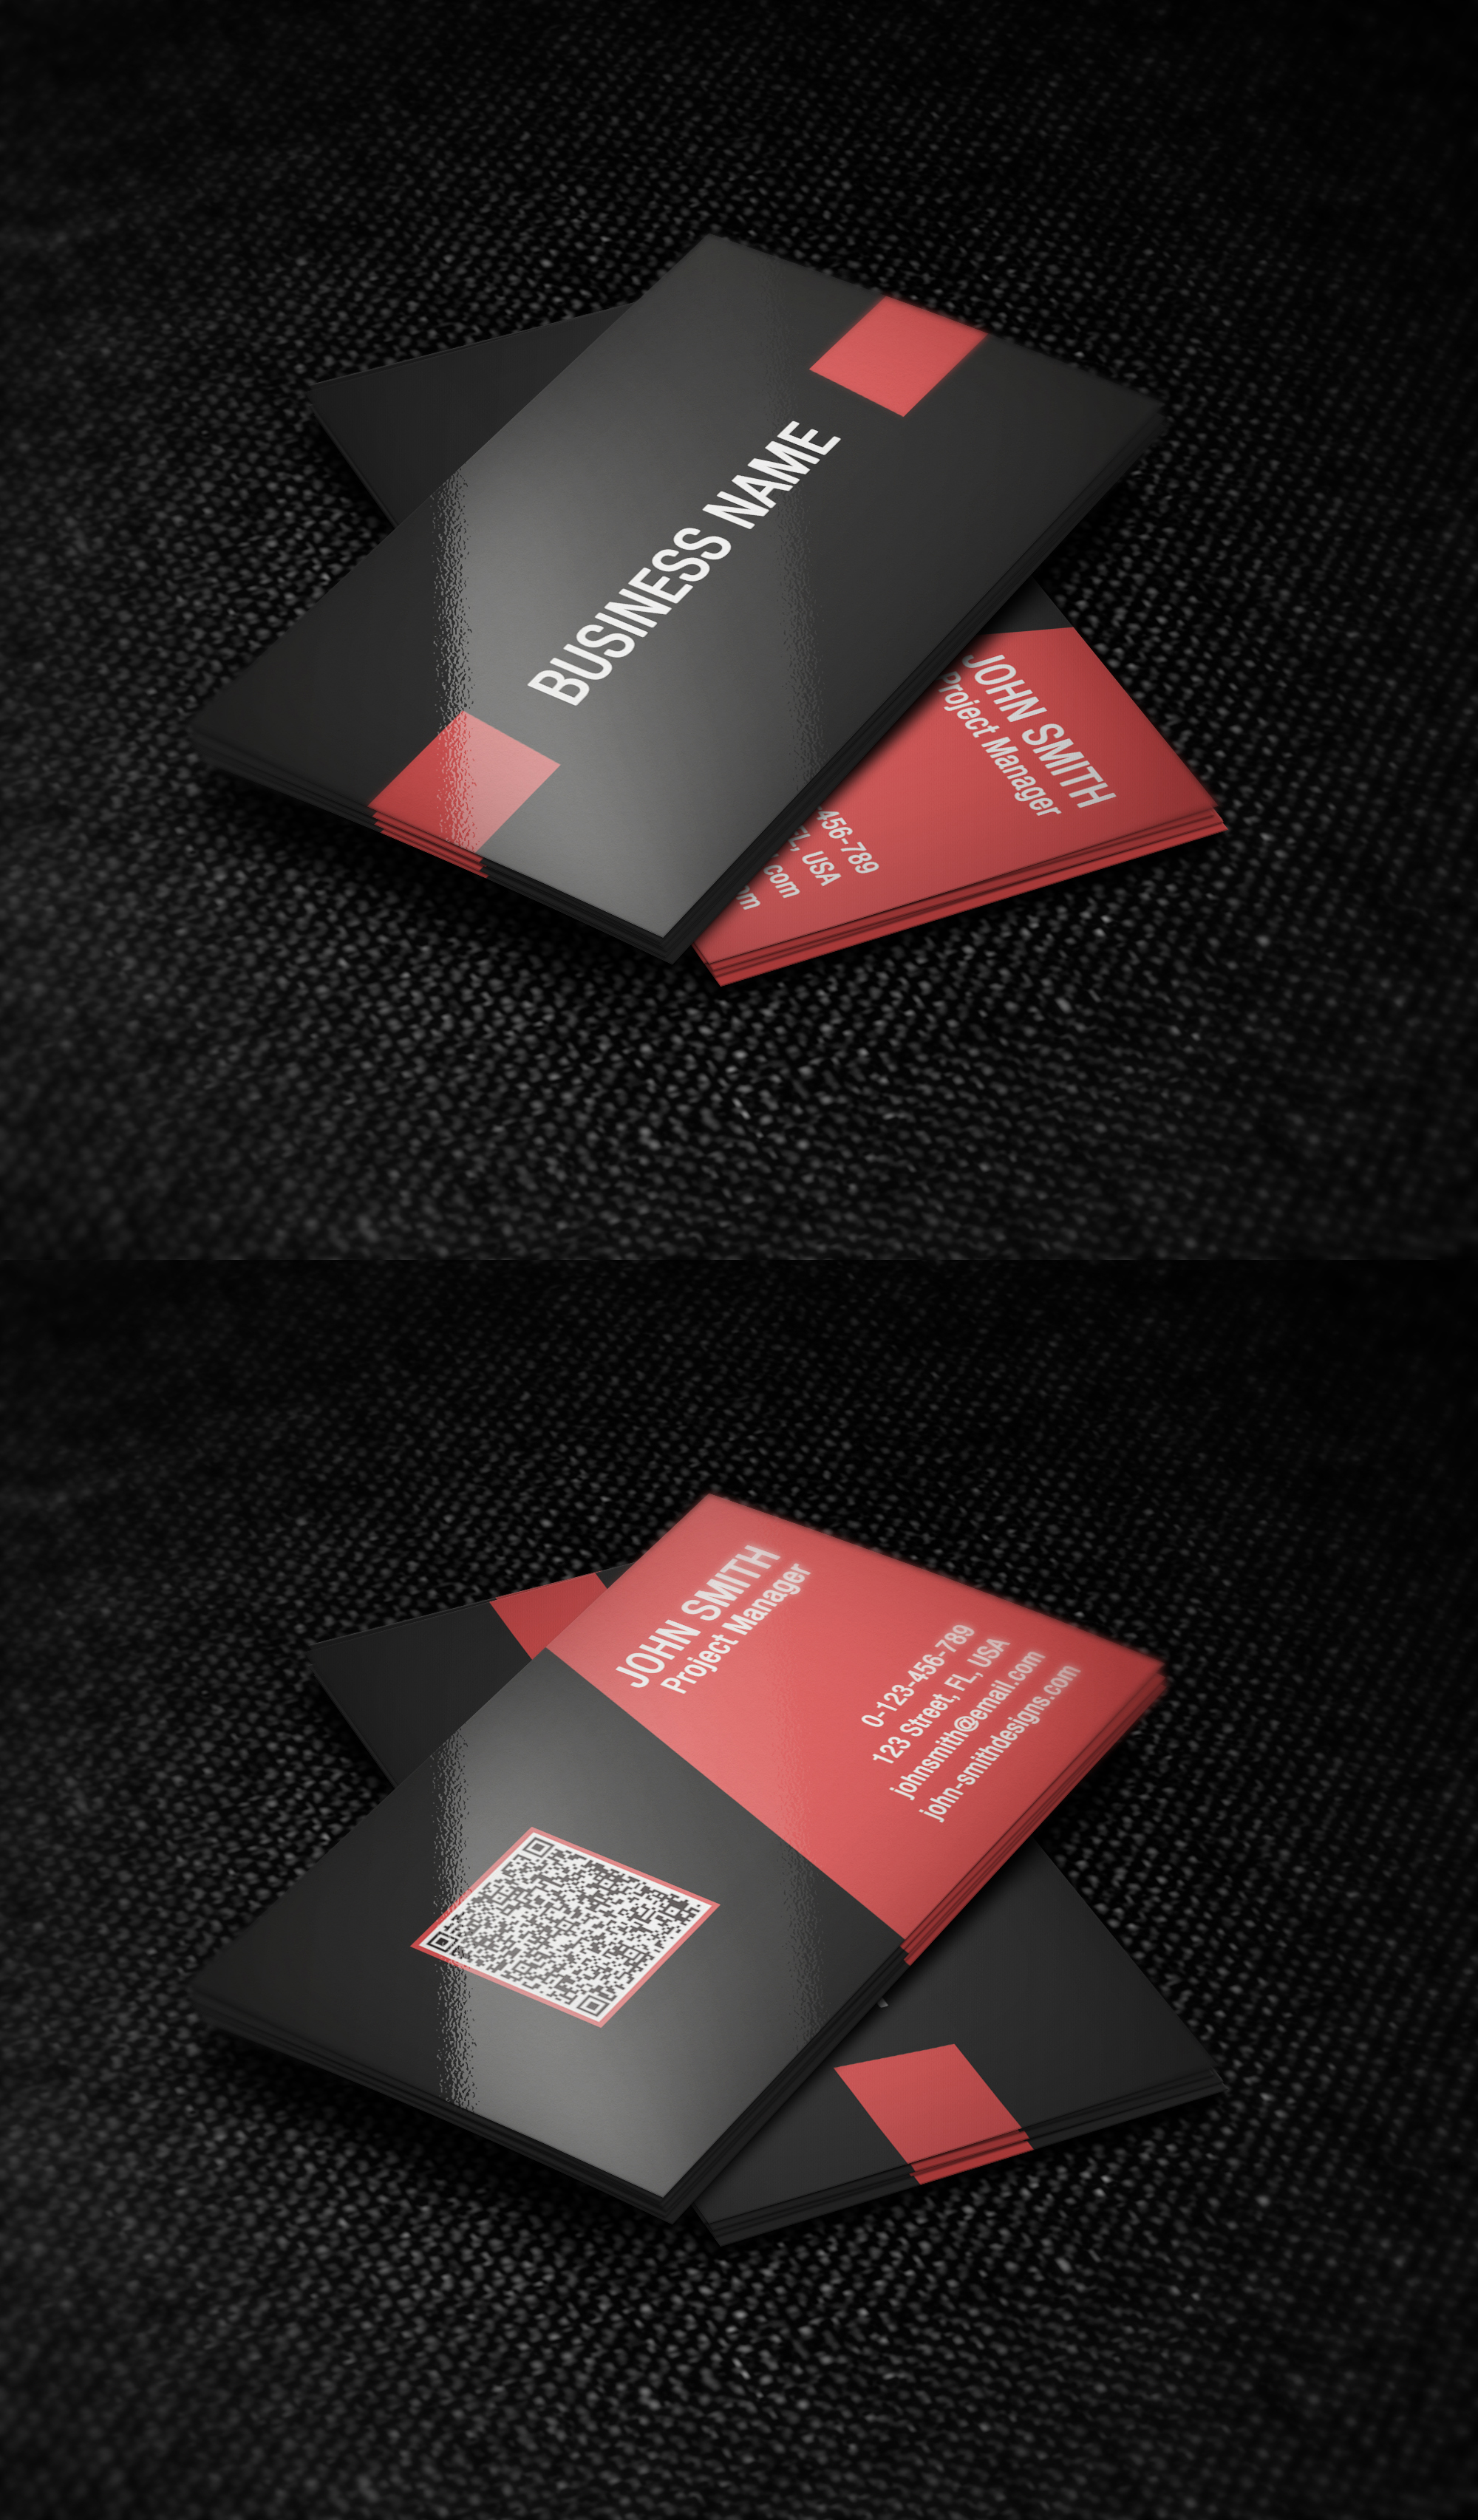 Red and Black Business Card Template by Nik1010 on DeviantArt